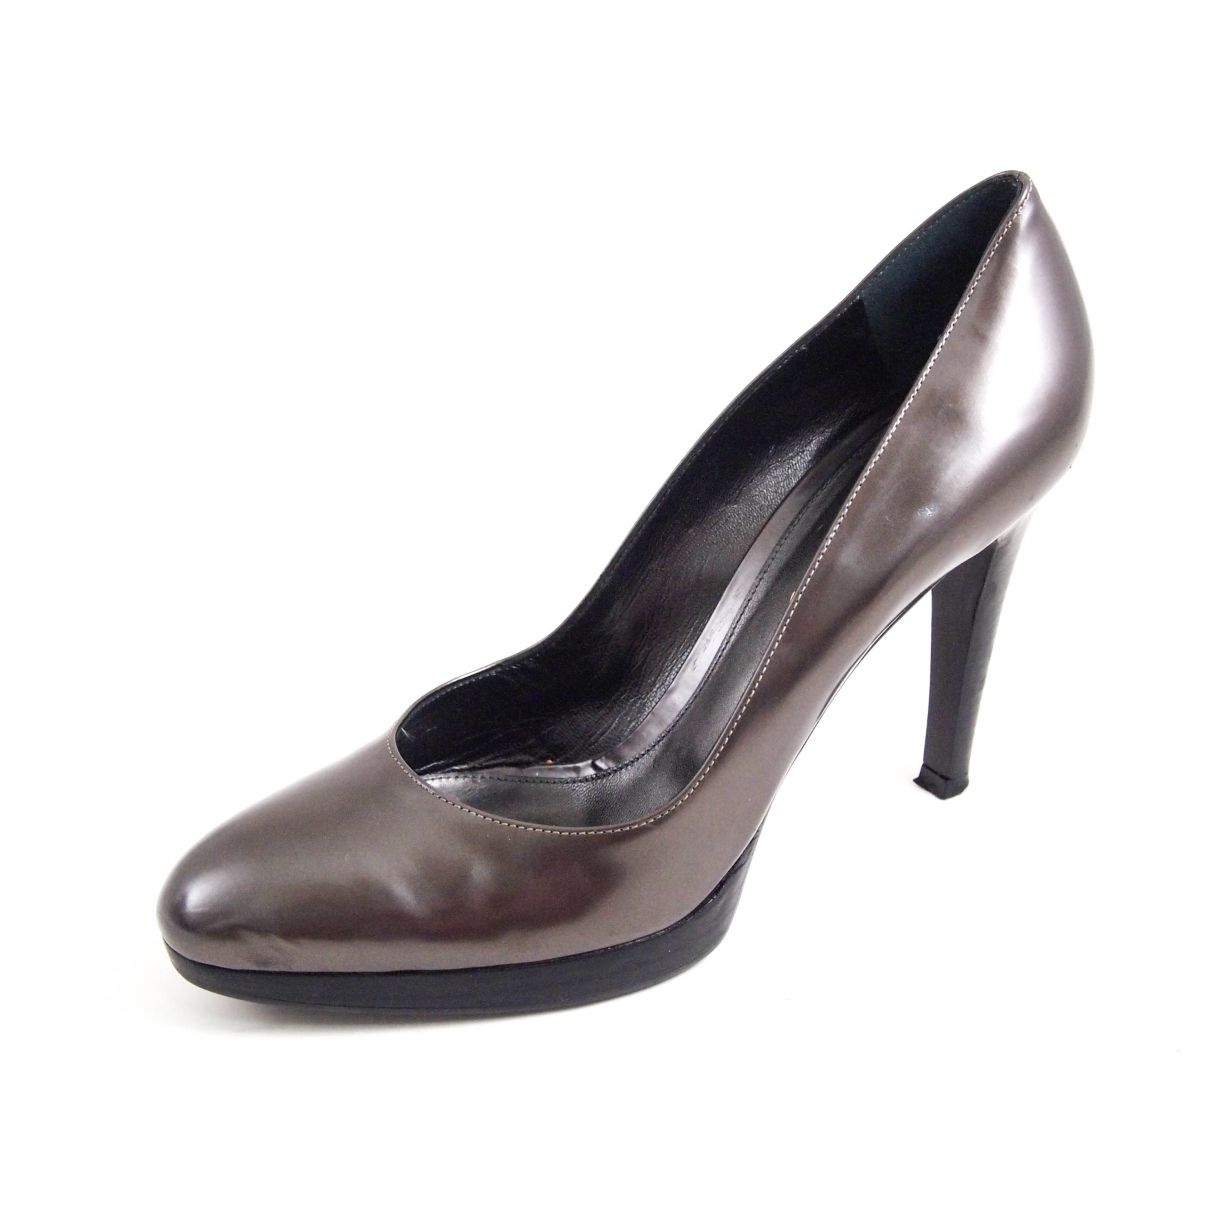 Gianvito Rossi \N Grey Leather Heels for Women 40 EU